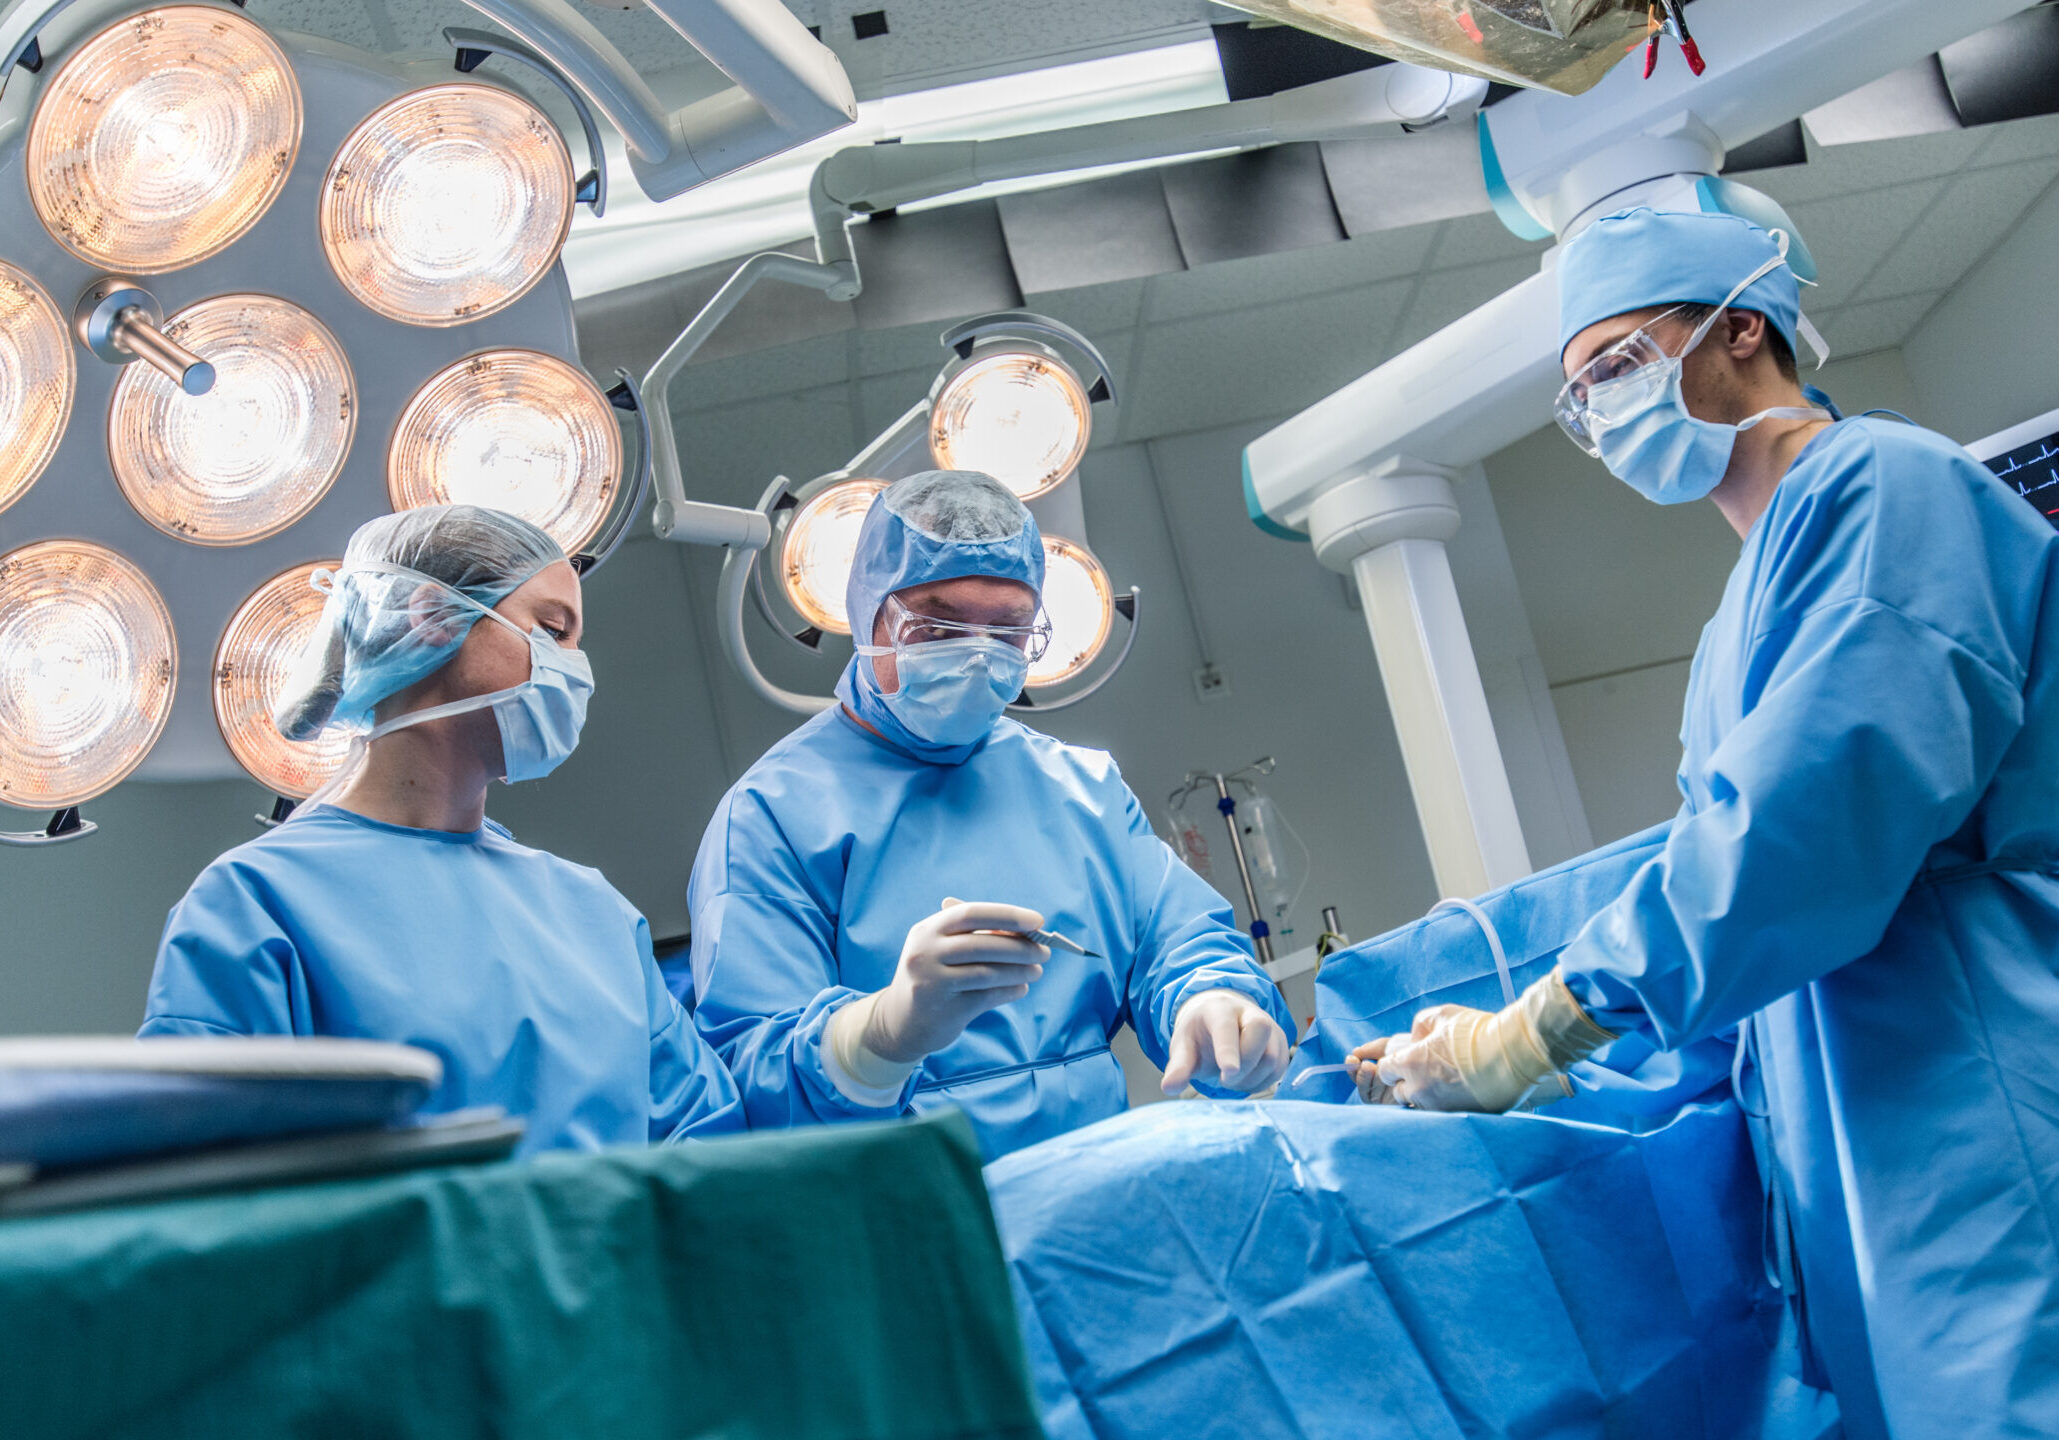 Surgeons doing surgery in operating theatre.